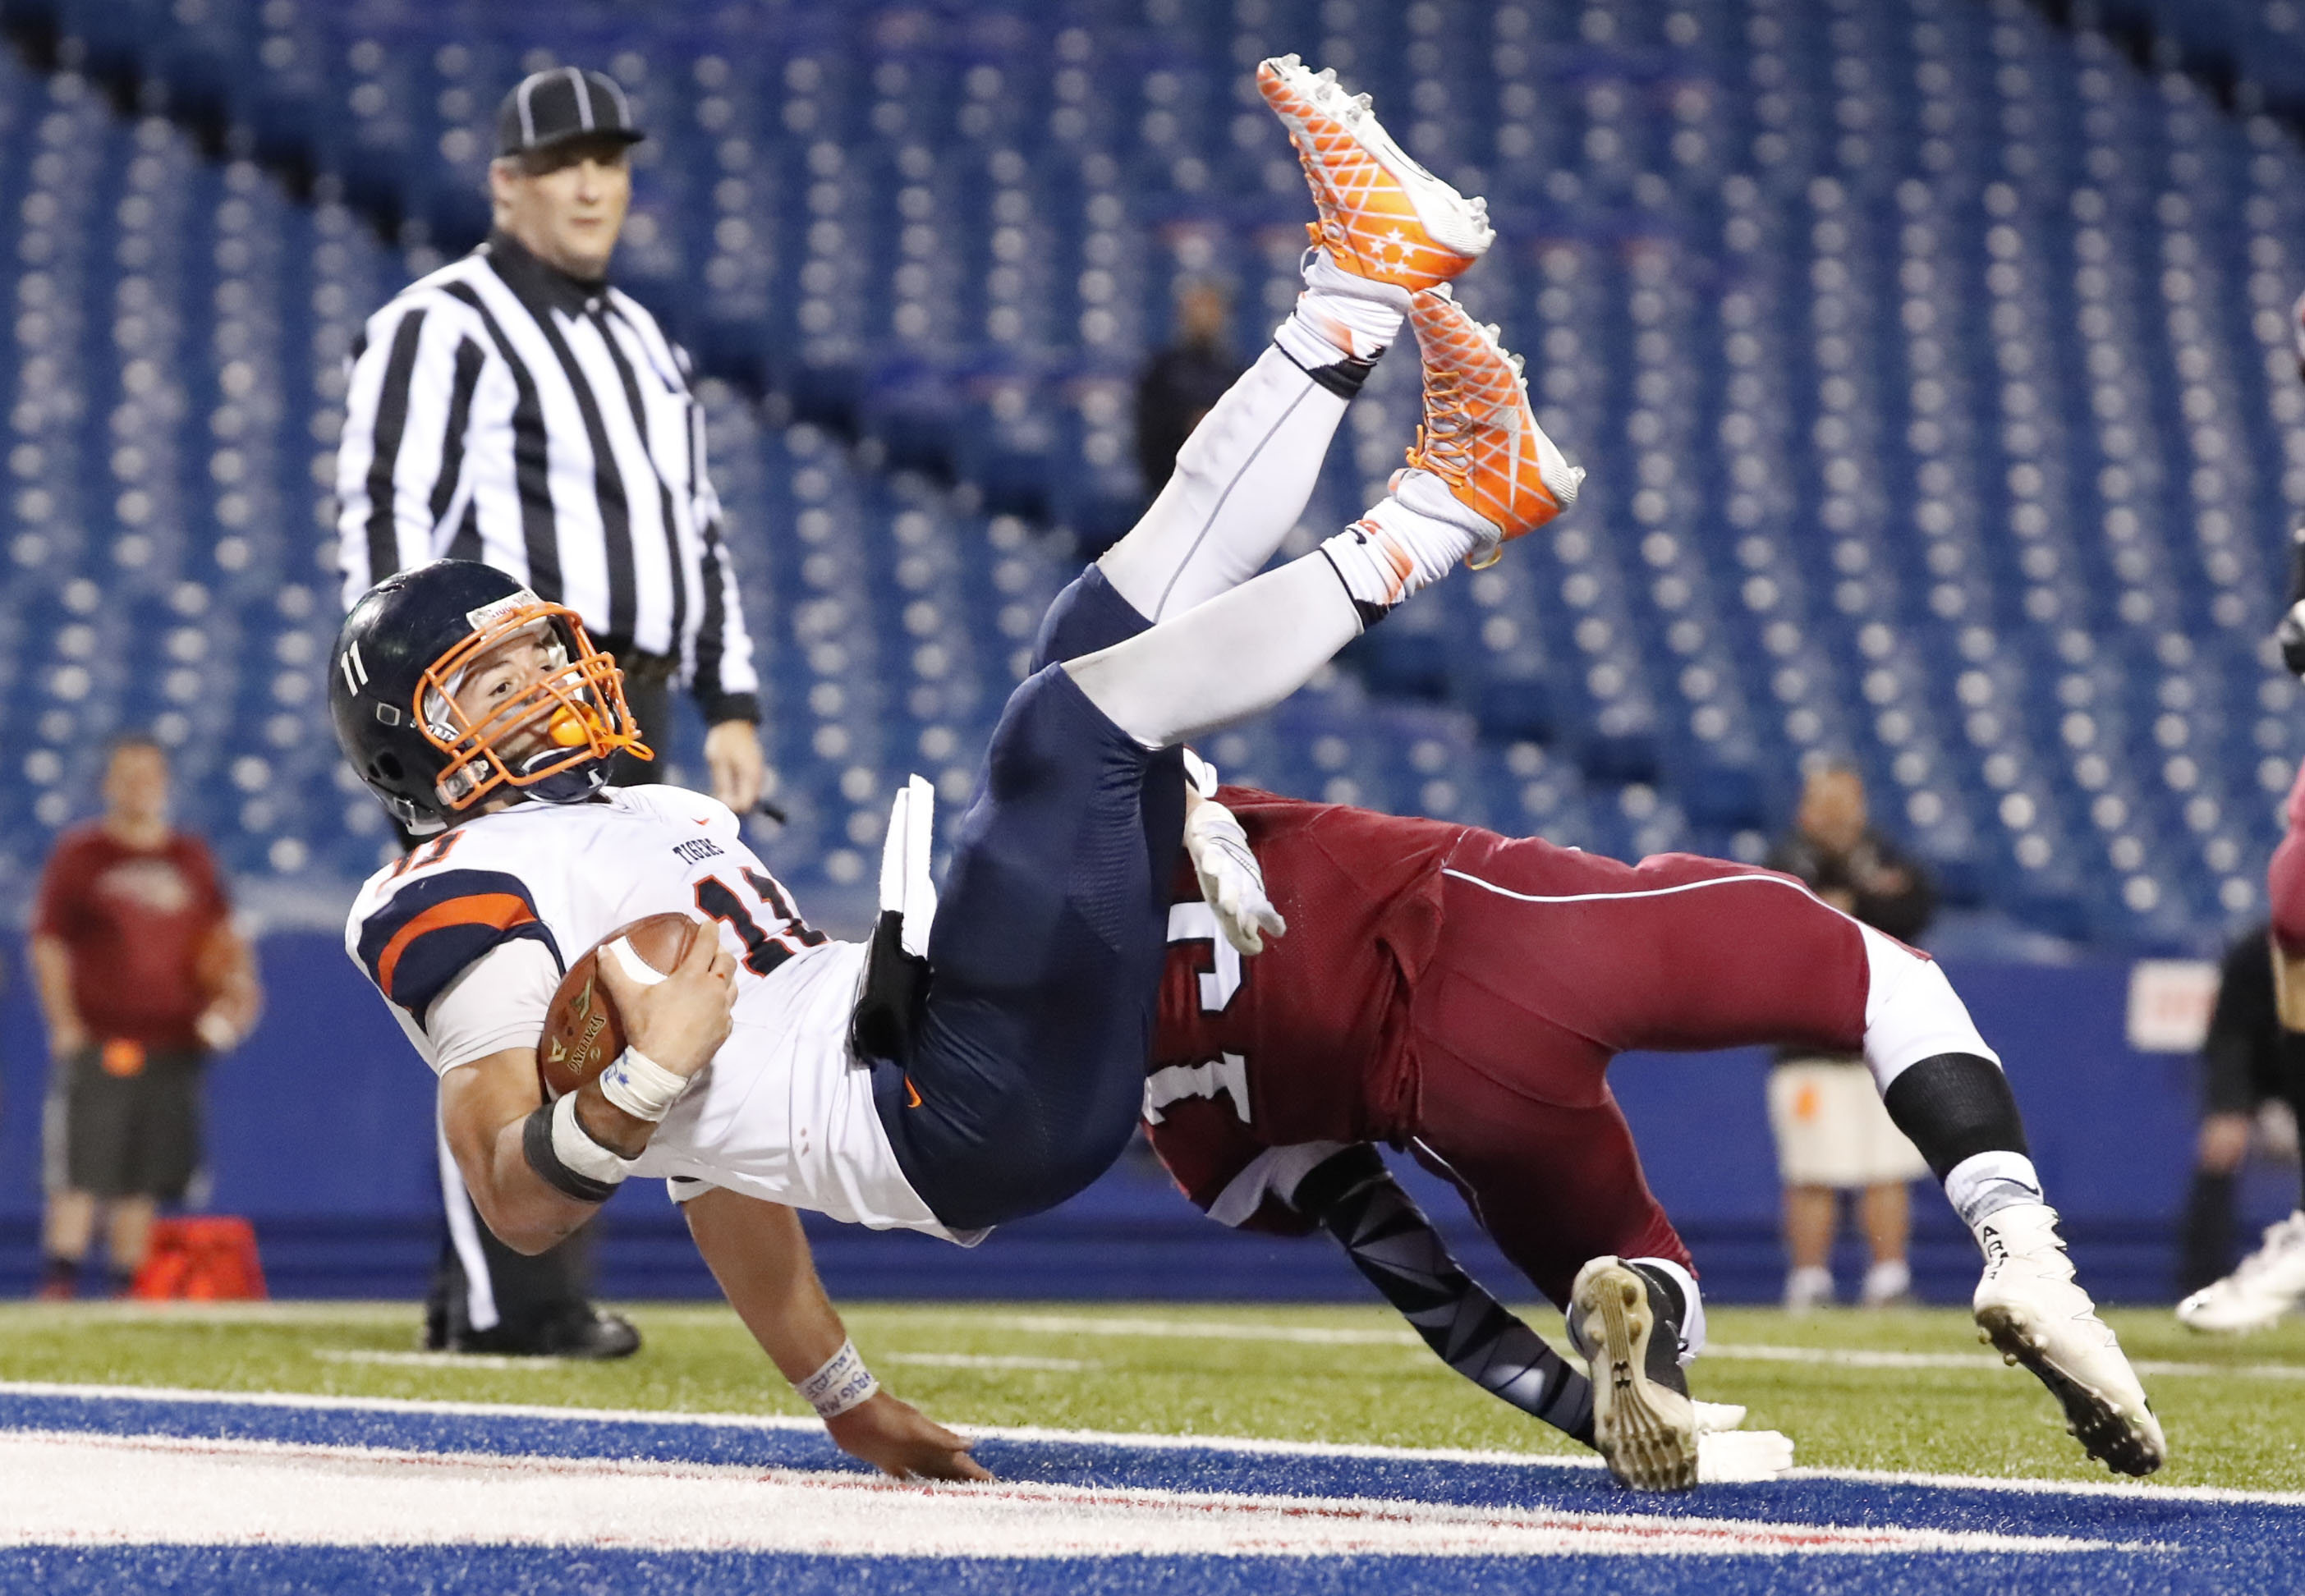 Bennett running back Isaiah McDuffie scores his second touchdown of the game against Starpoint during second half action of the Section VI Class A final at New Era Field. (Harry Scull Jr./Buffalo News)